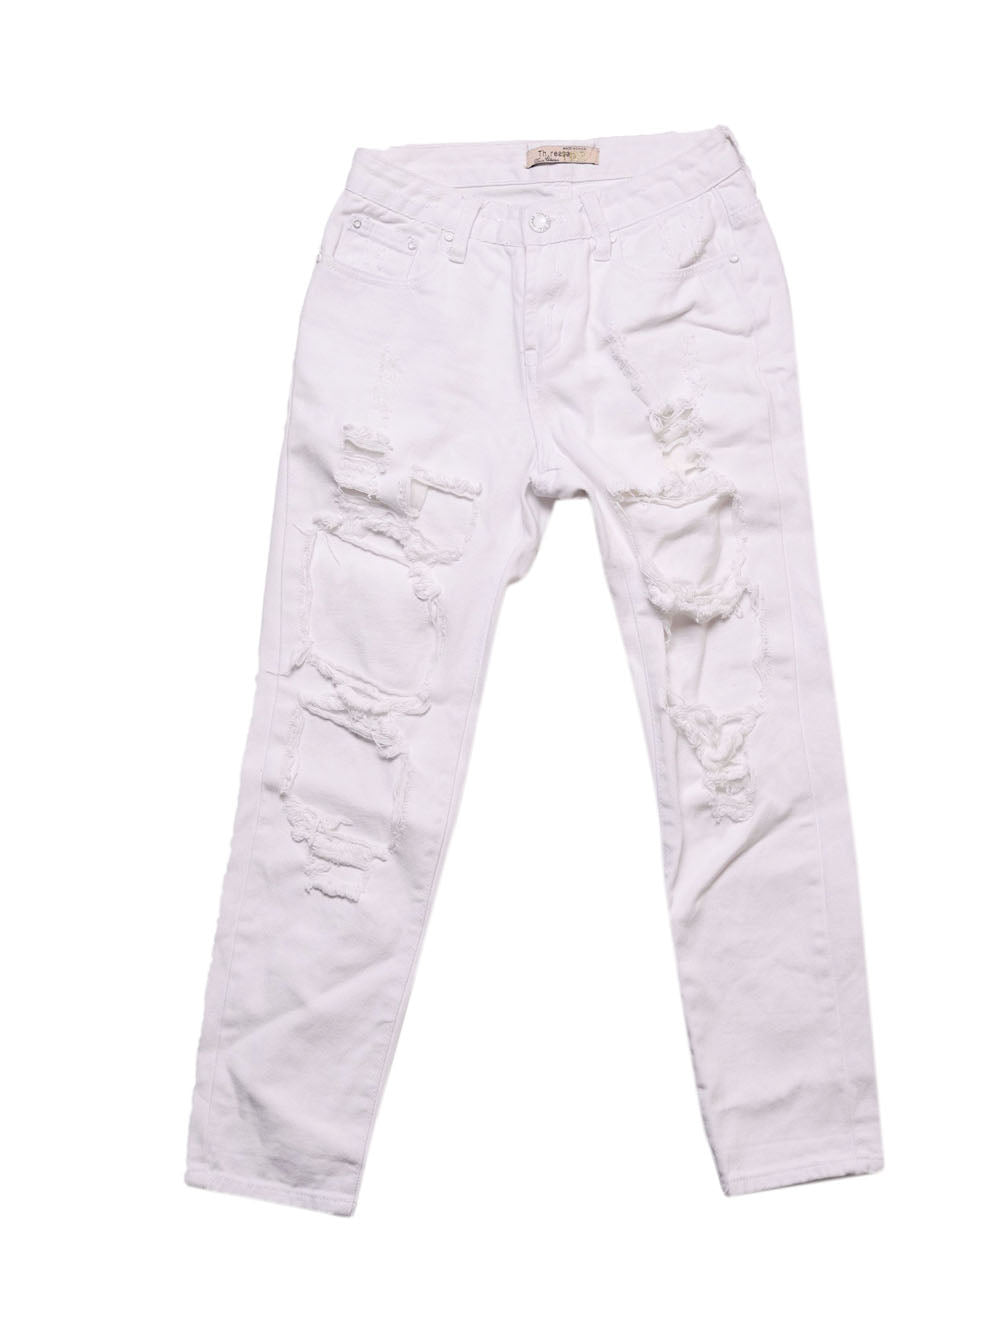 Front photo of Preloved denim collection White Woman's trousers - size 8/S